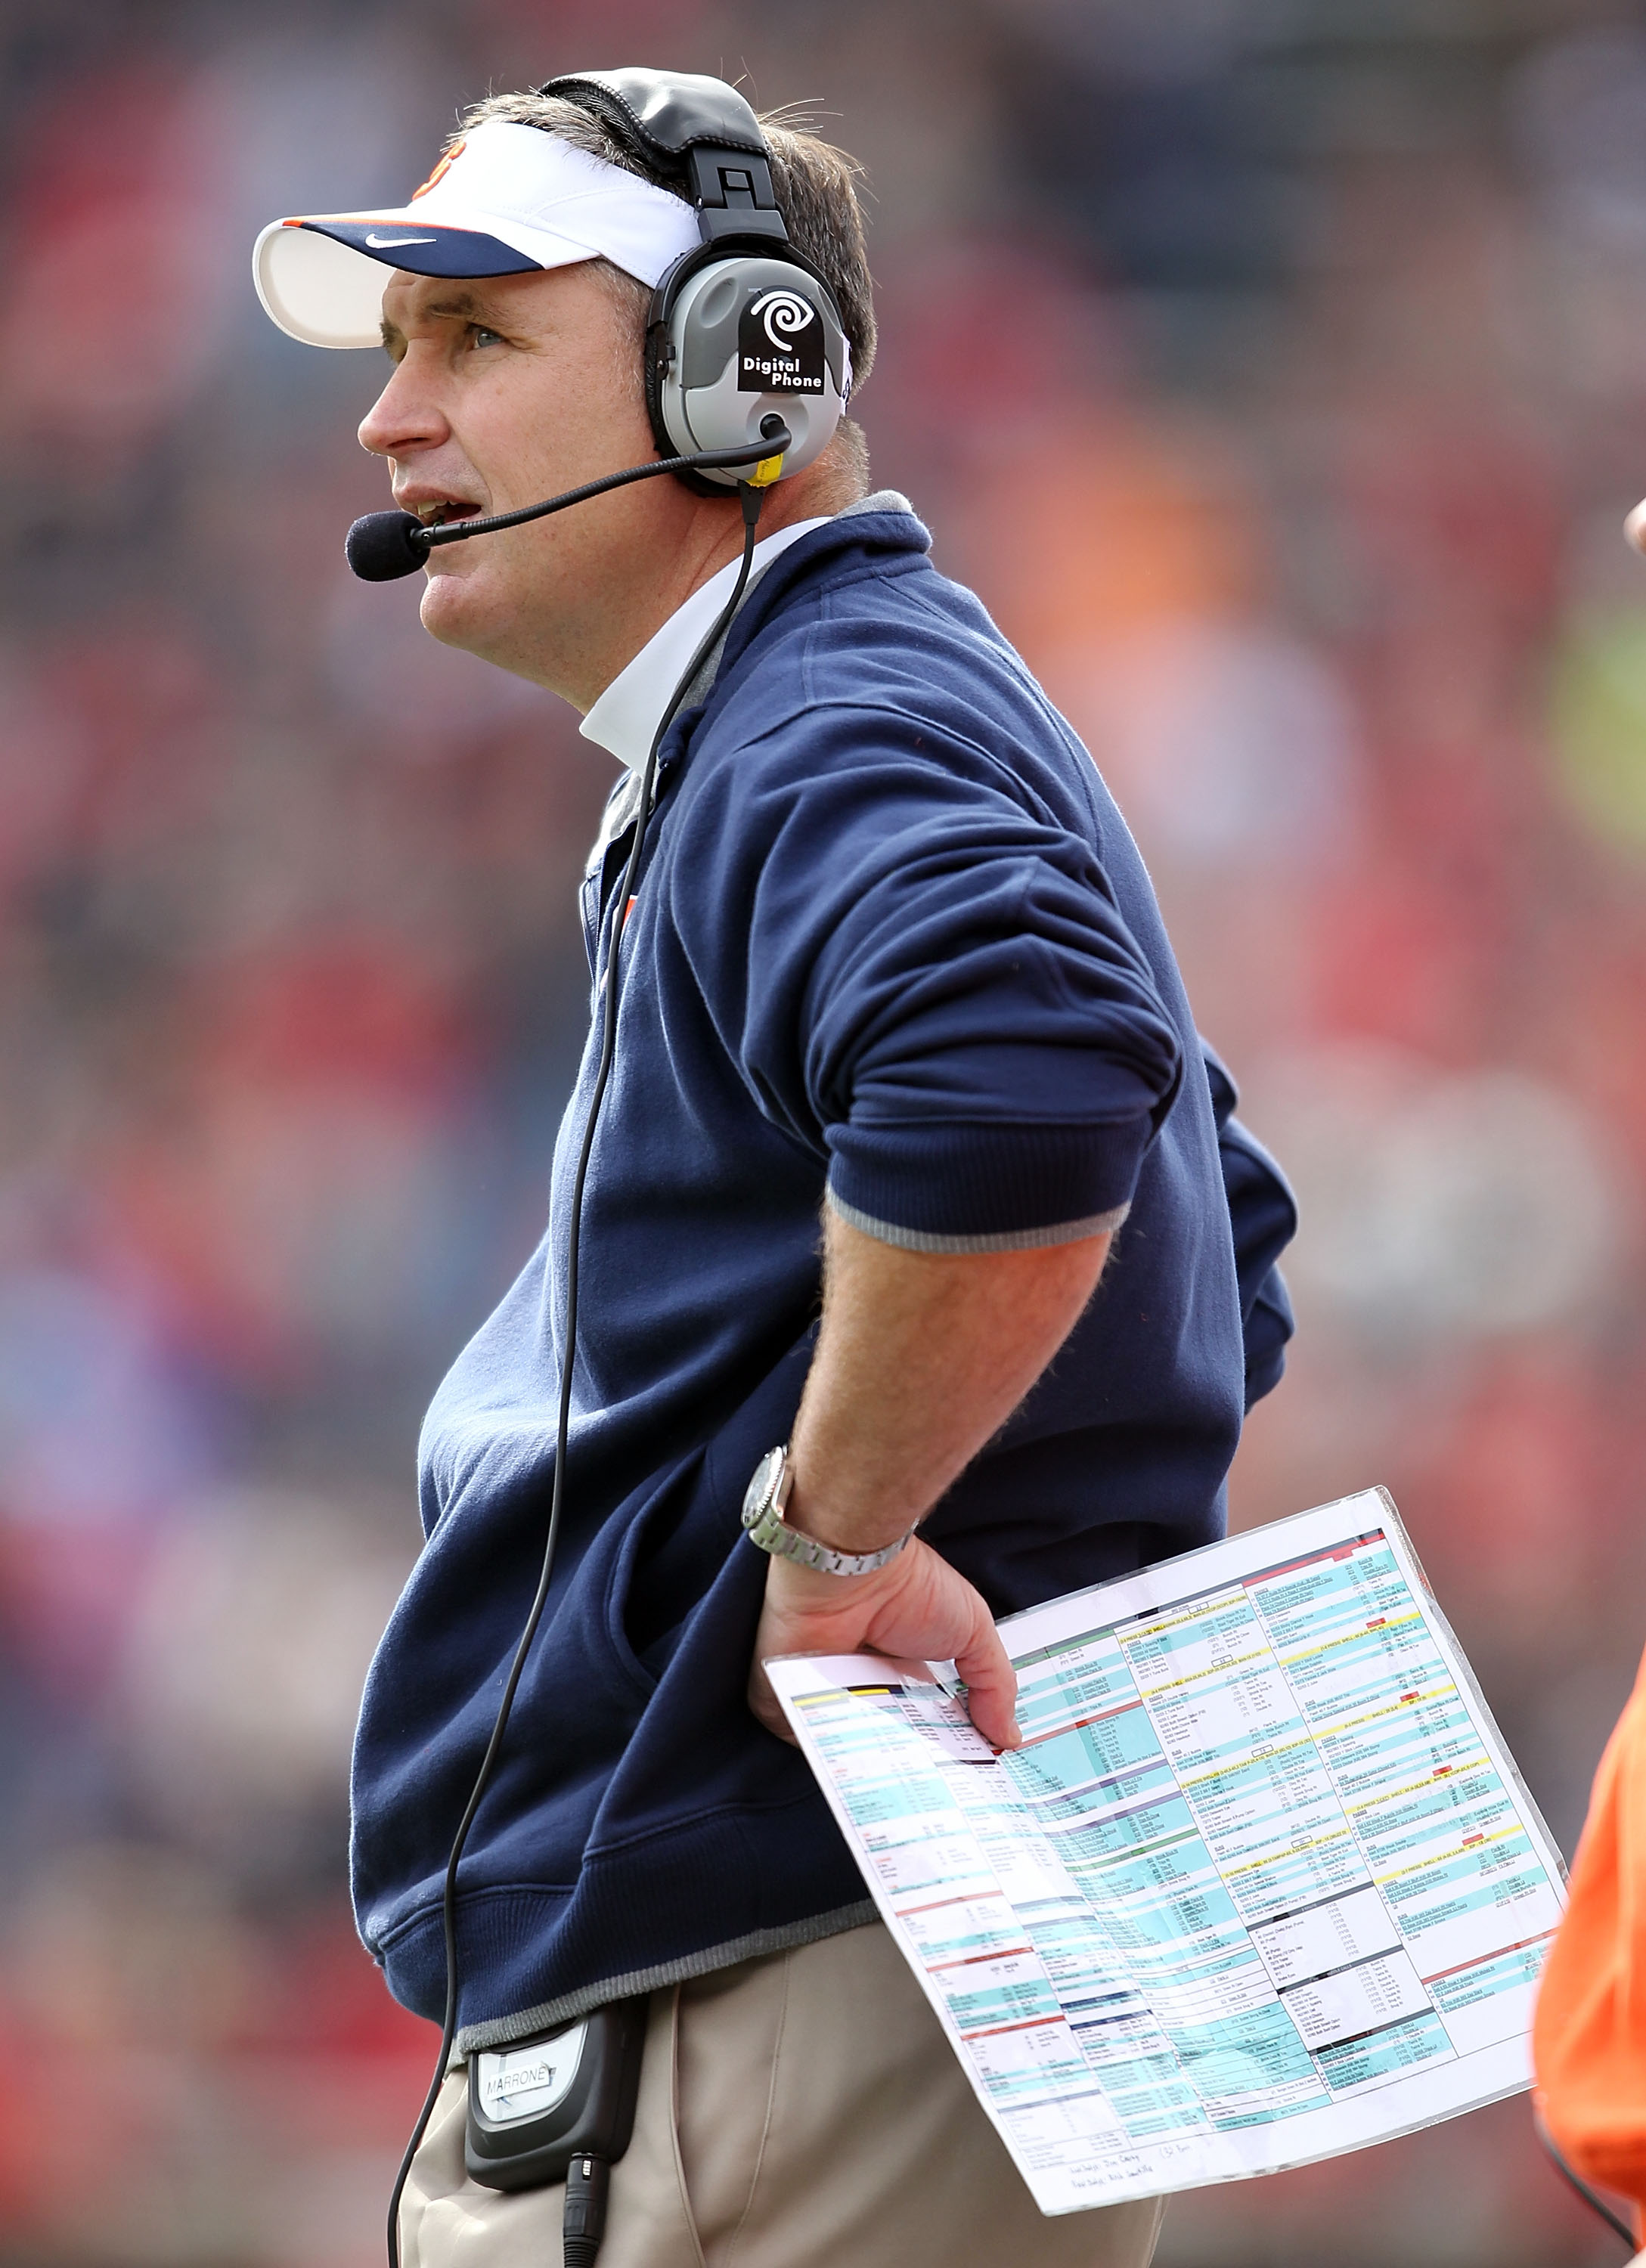 CINCINNATI - OCTOBER 30:  Doug Marrone the Head Coach of the Syracuse Orange gives instructions to his team during the Big East Conference game against the Cincinnati Bearcats at Nippert Stadium on October 30, 2010 in Cincinnati, Ohio.  (Photo by Andy Lyo